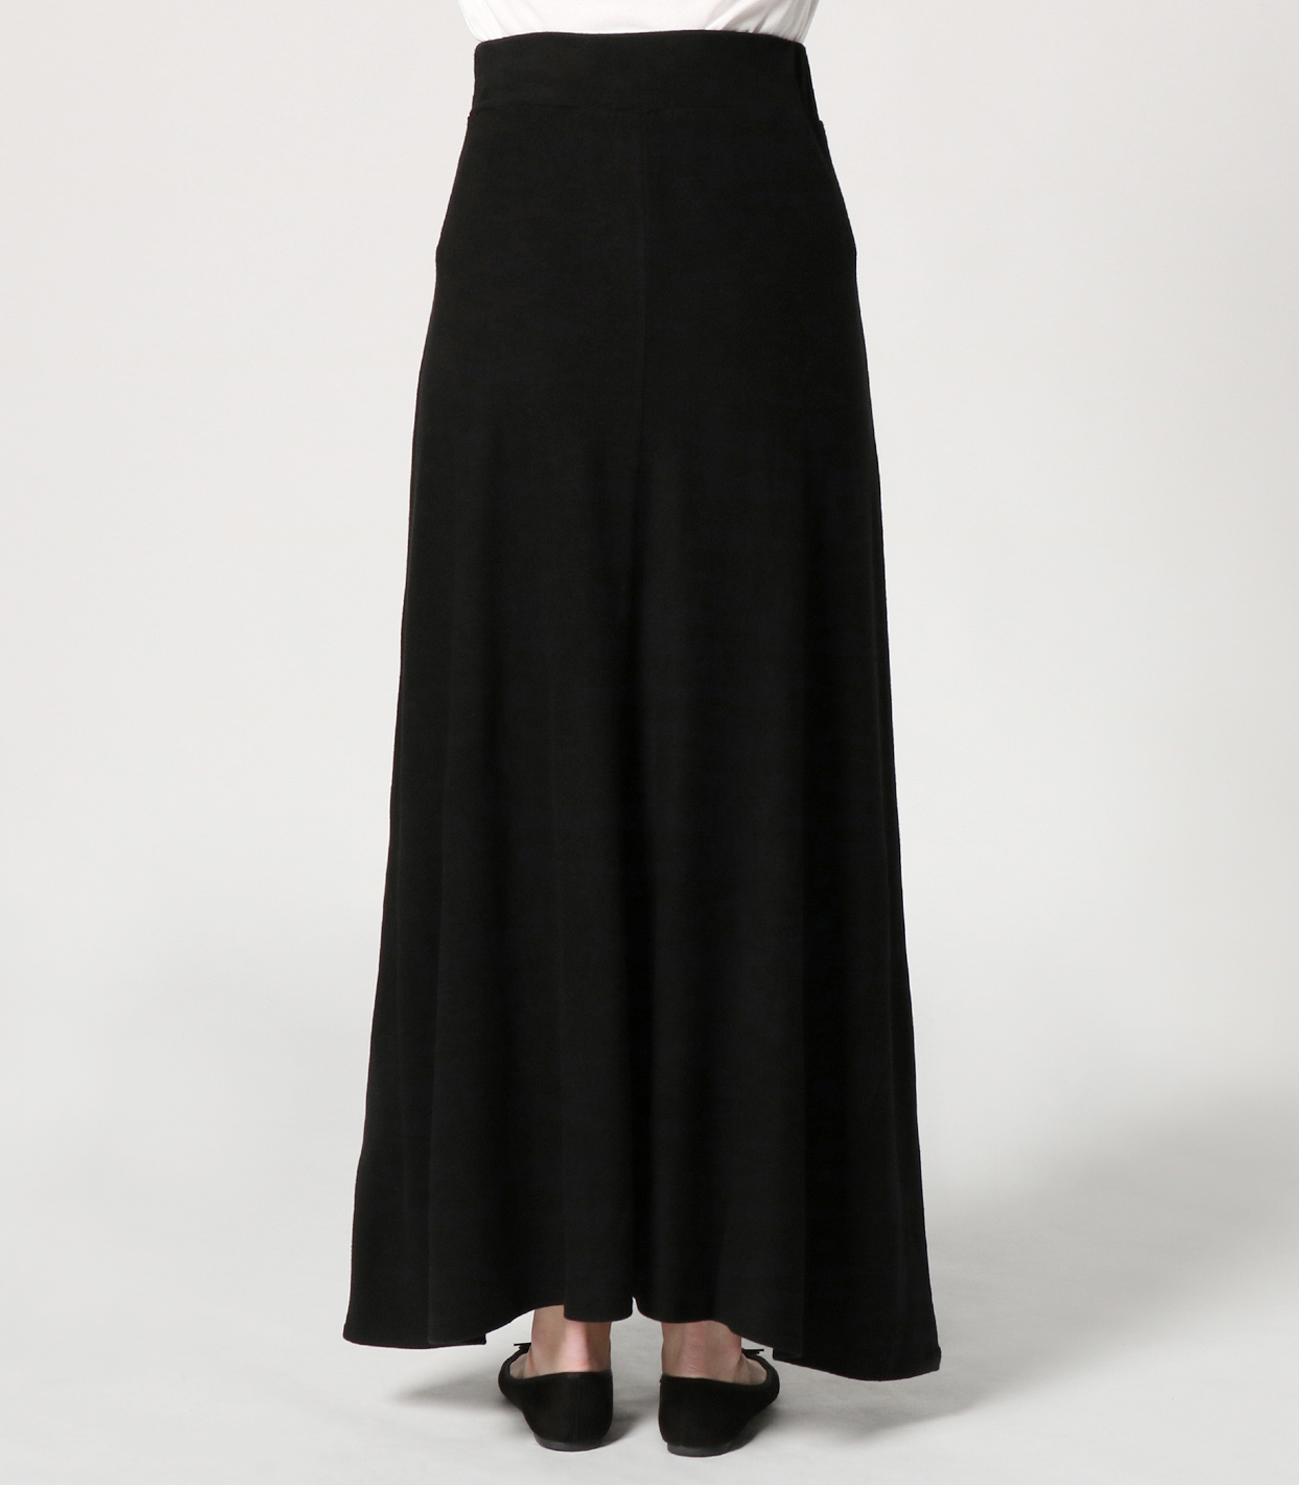 brushed sweater long skirt 詳細画像 black 4